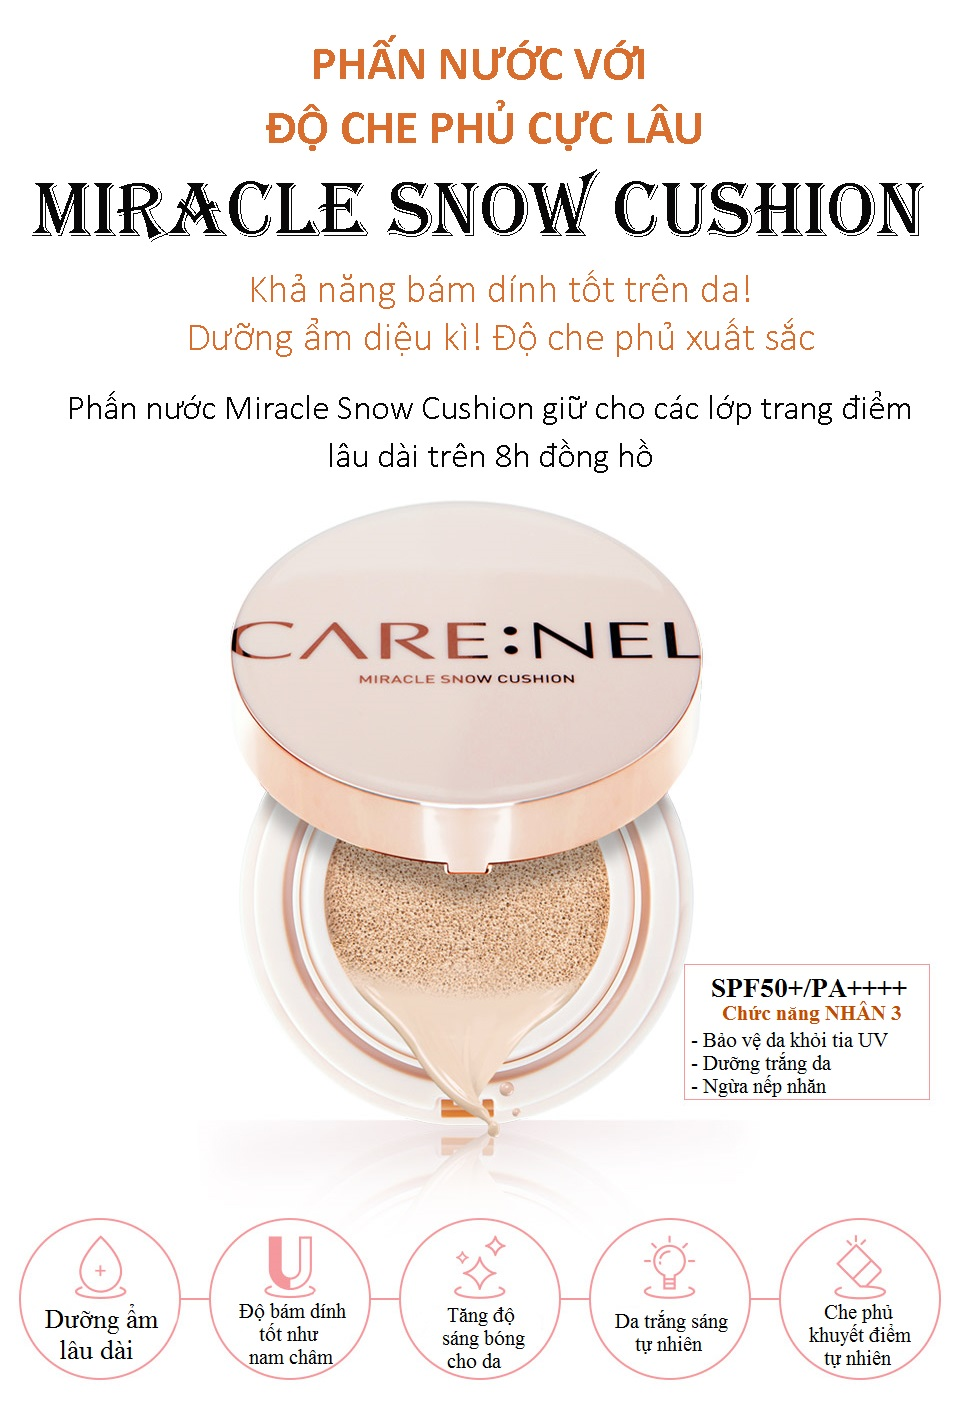 Phan Nuoc Carenel Miracle Snow (1)